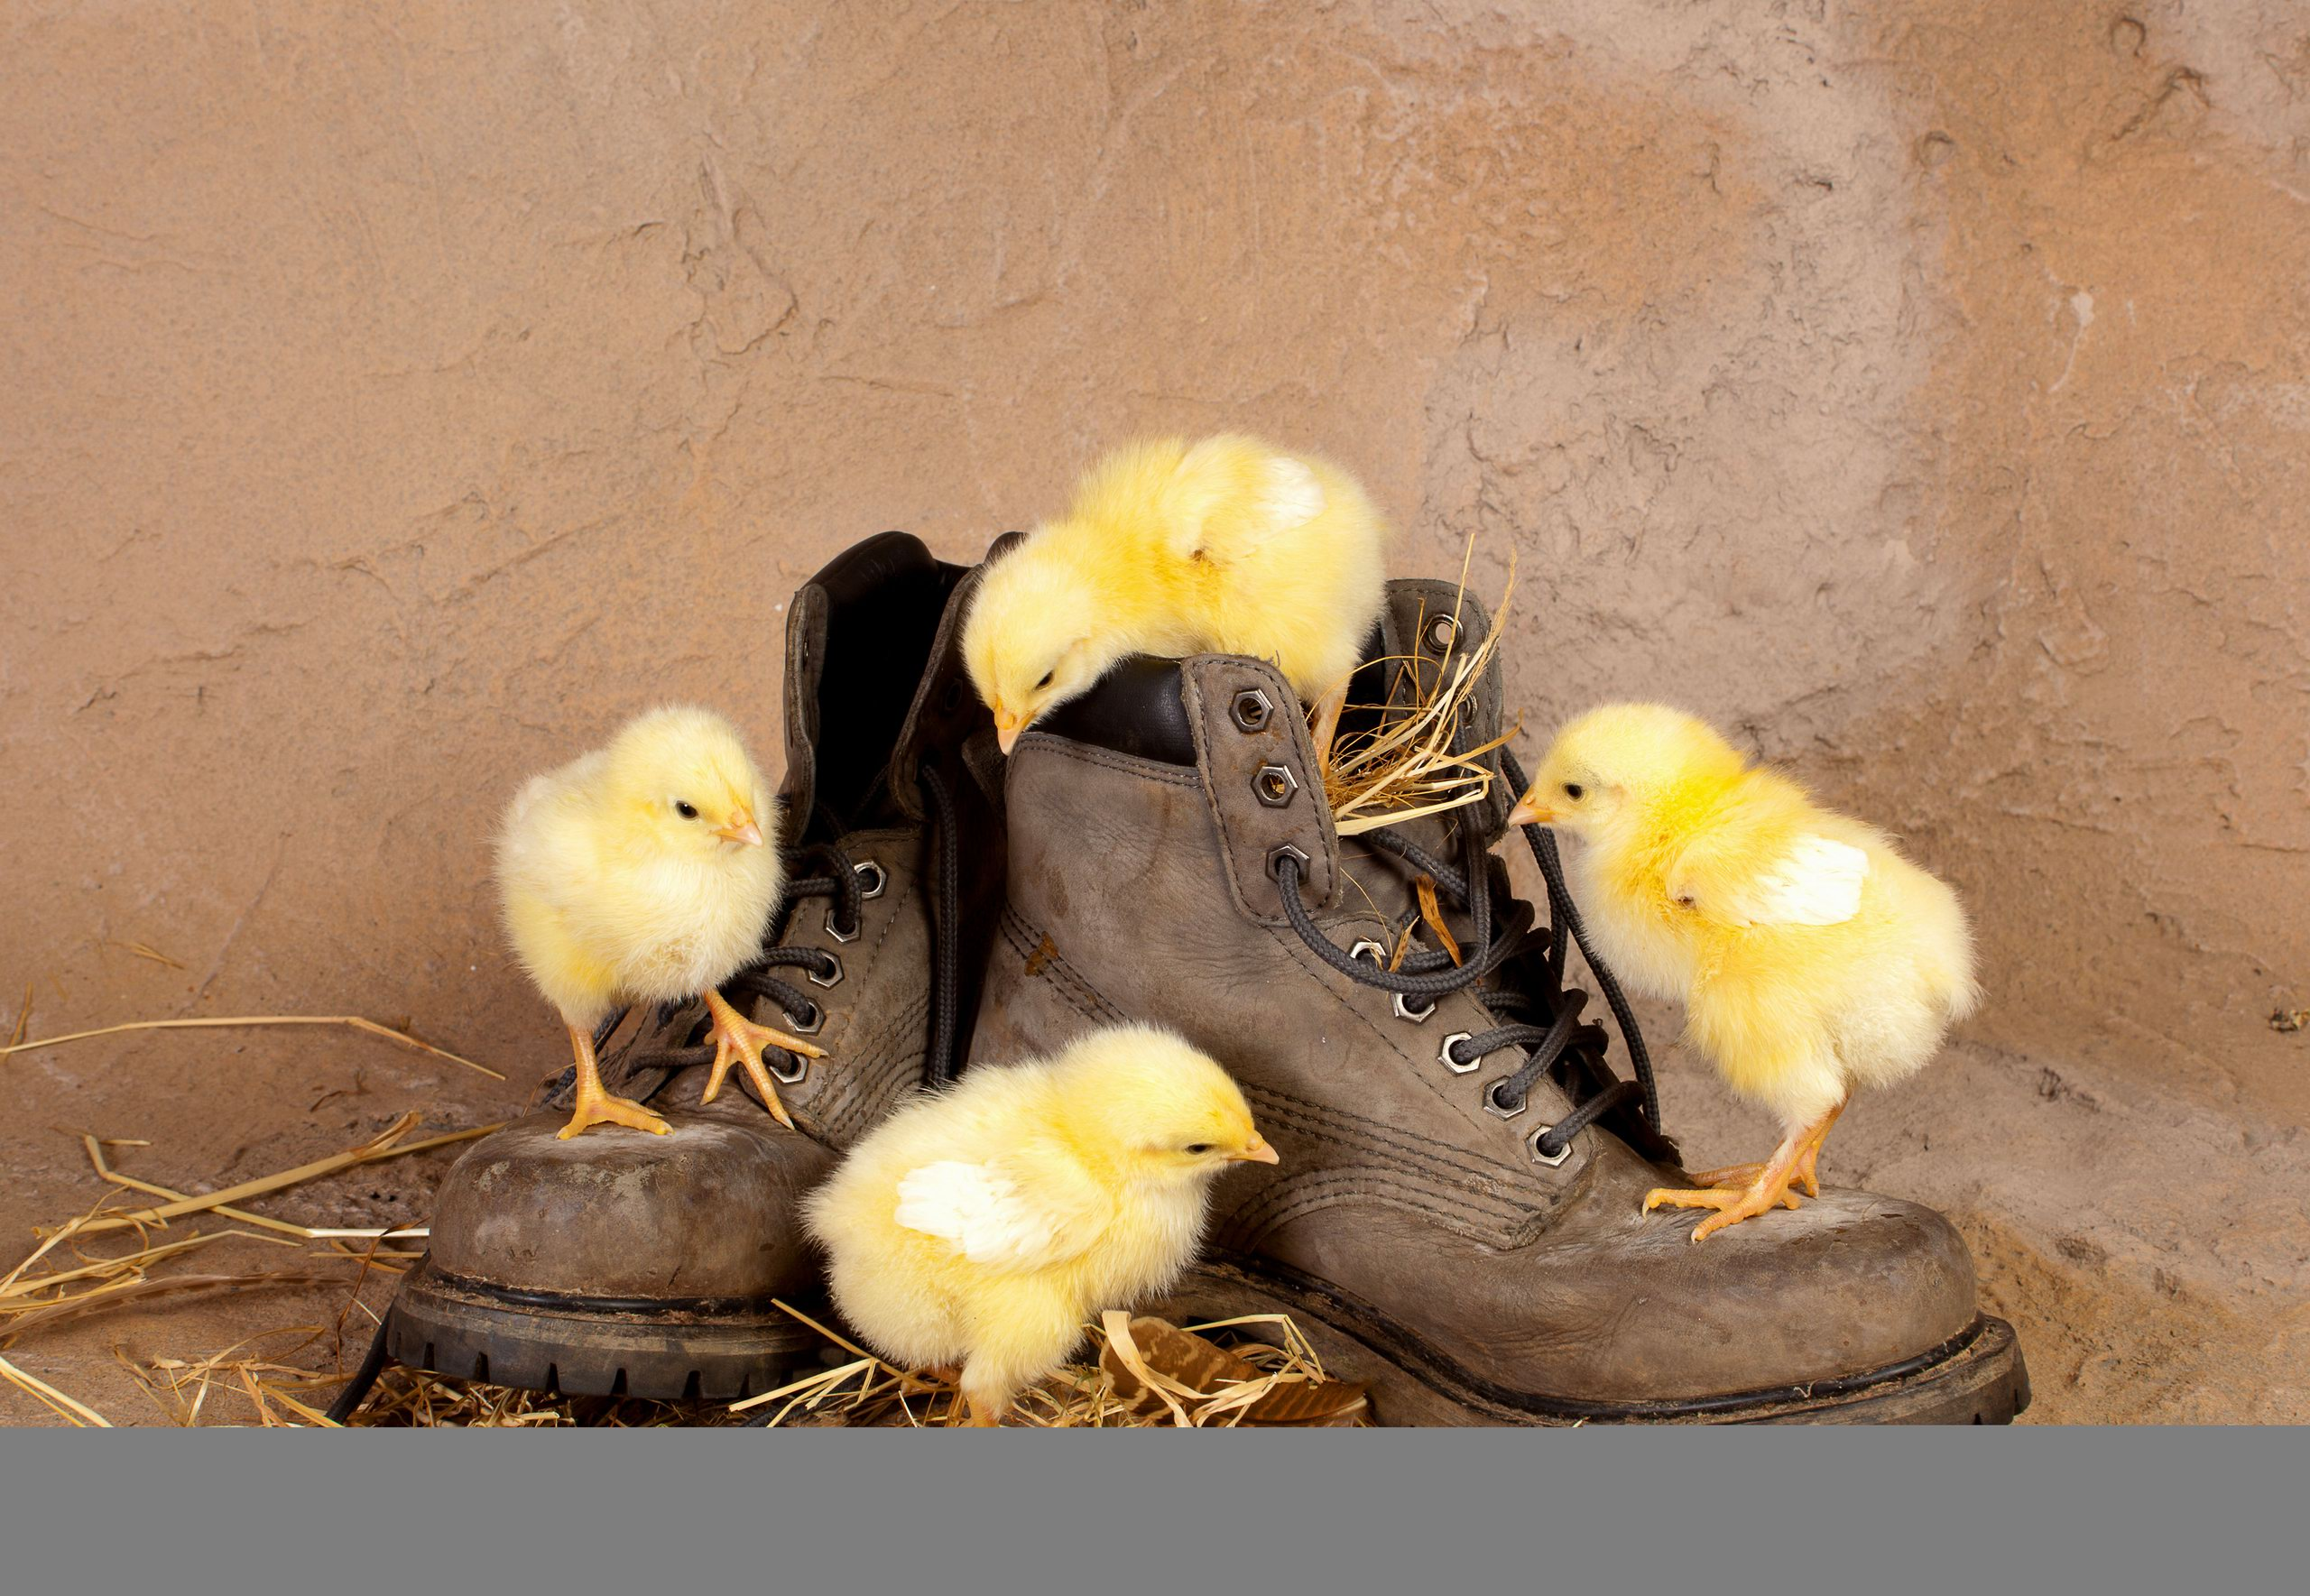 Chickens, chicks, boots, straw, curiosity, wallpapers , Pc backgrounds, free photos - HD wallpaper desktop backgrounds